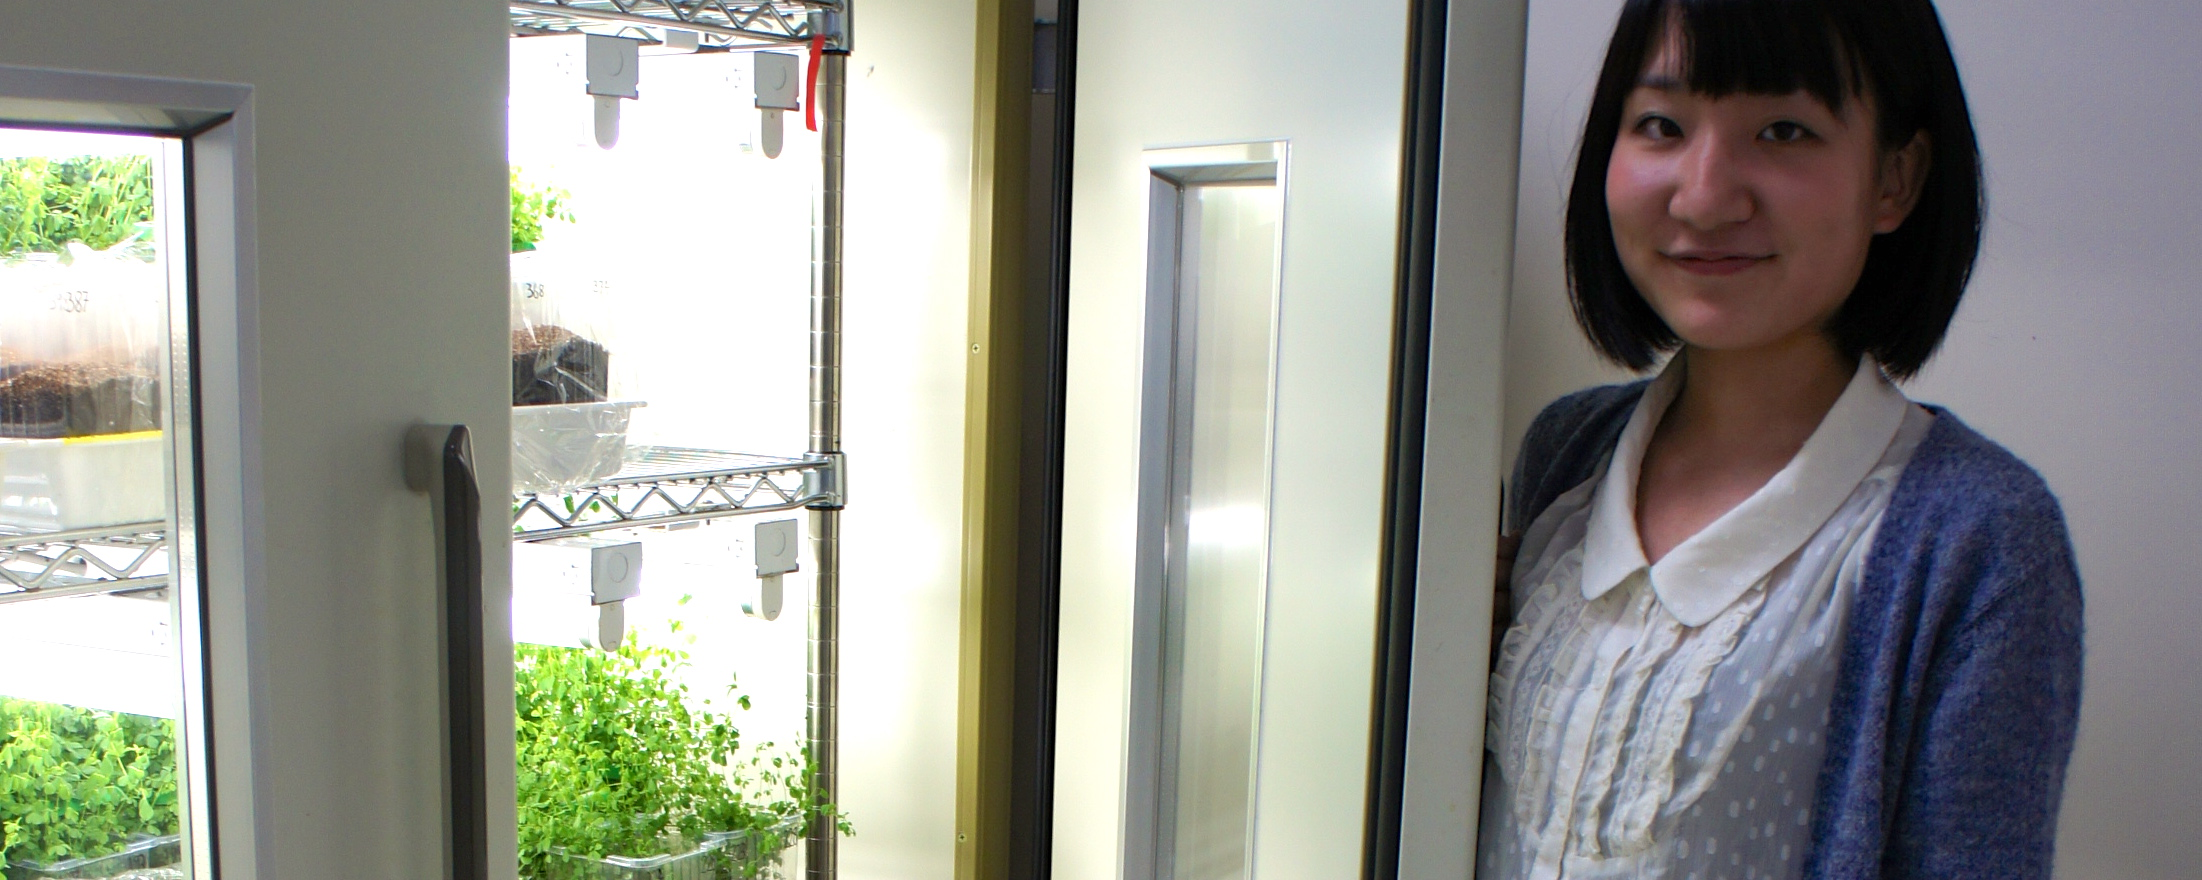 Yu Hasegawa stands by the laboratory fridge in which samples of infected plants are stored.